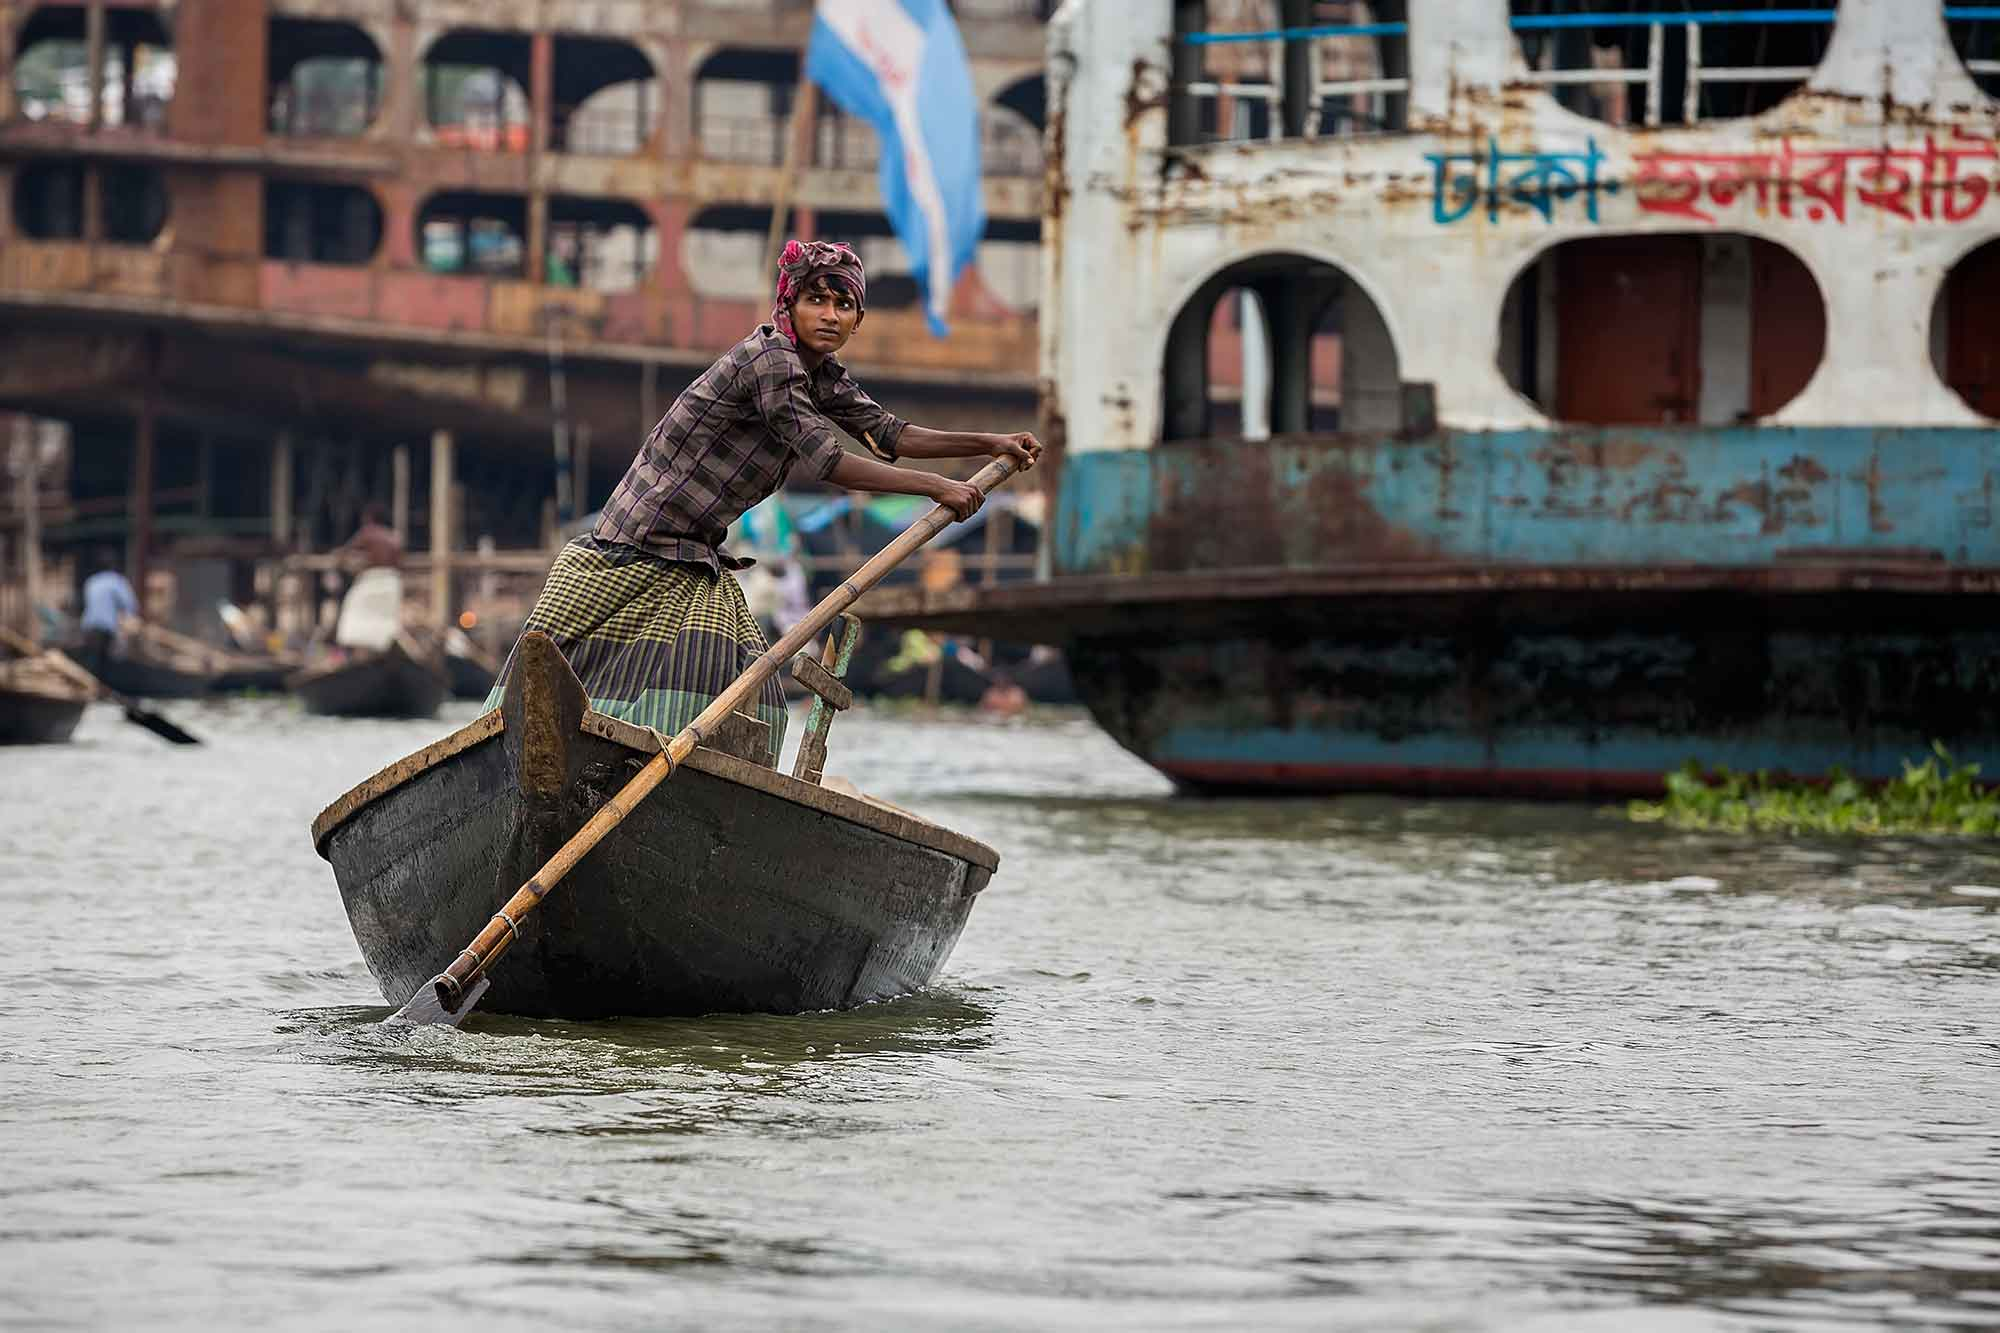 A ferryman taking people across the Buriganga River in his wooden boat. © Ulli Maier & Nisa Maier